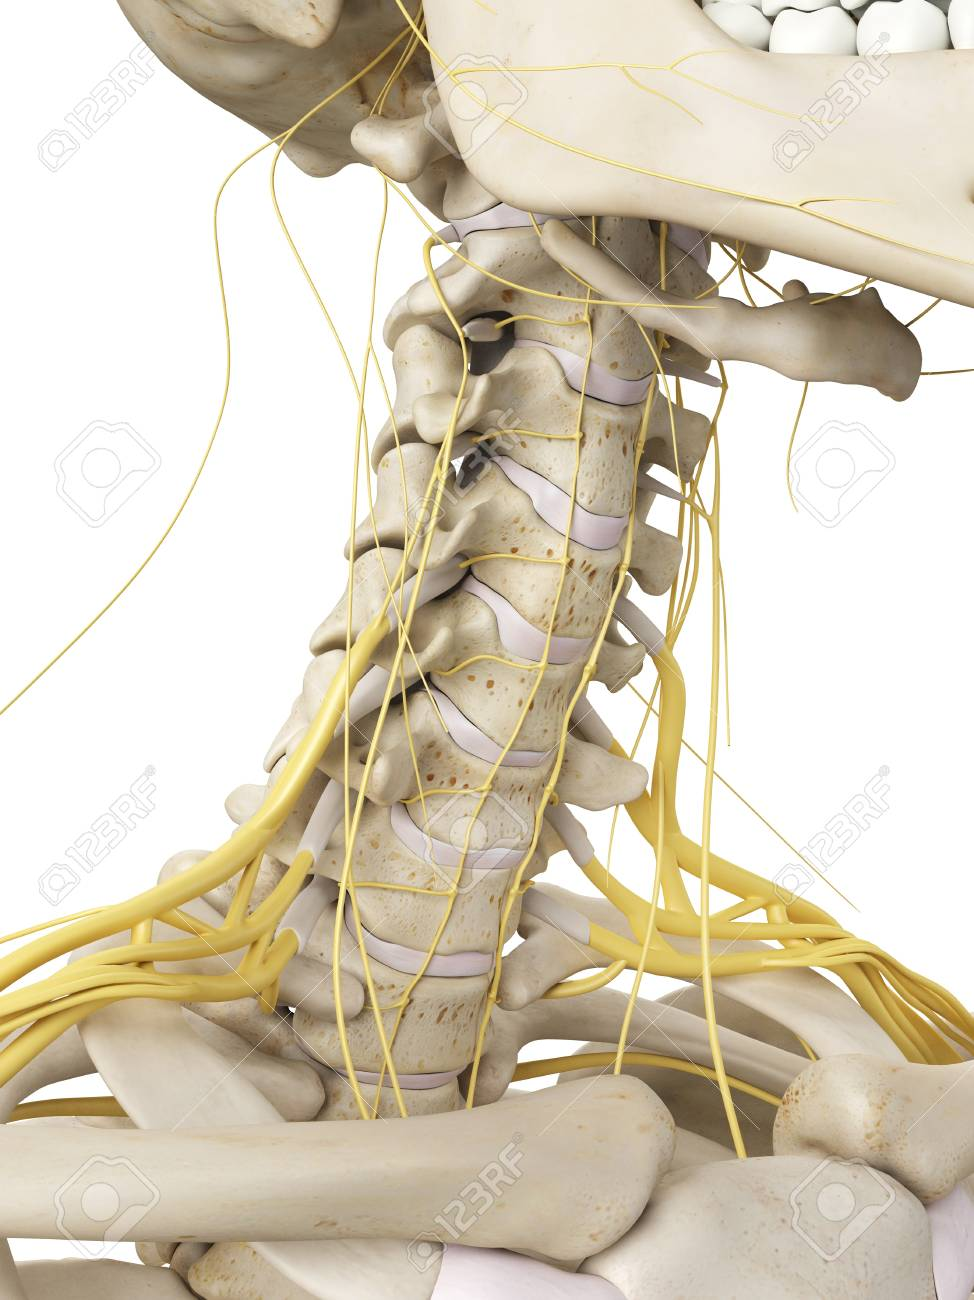 Neck Bones And Nerves, Artwork Stock Photo, Picture And Royalty Free ...